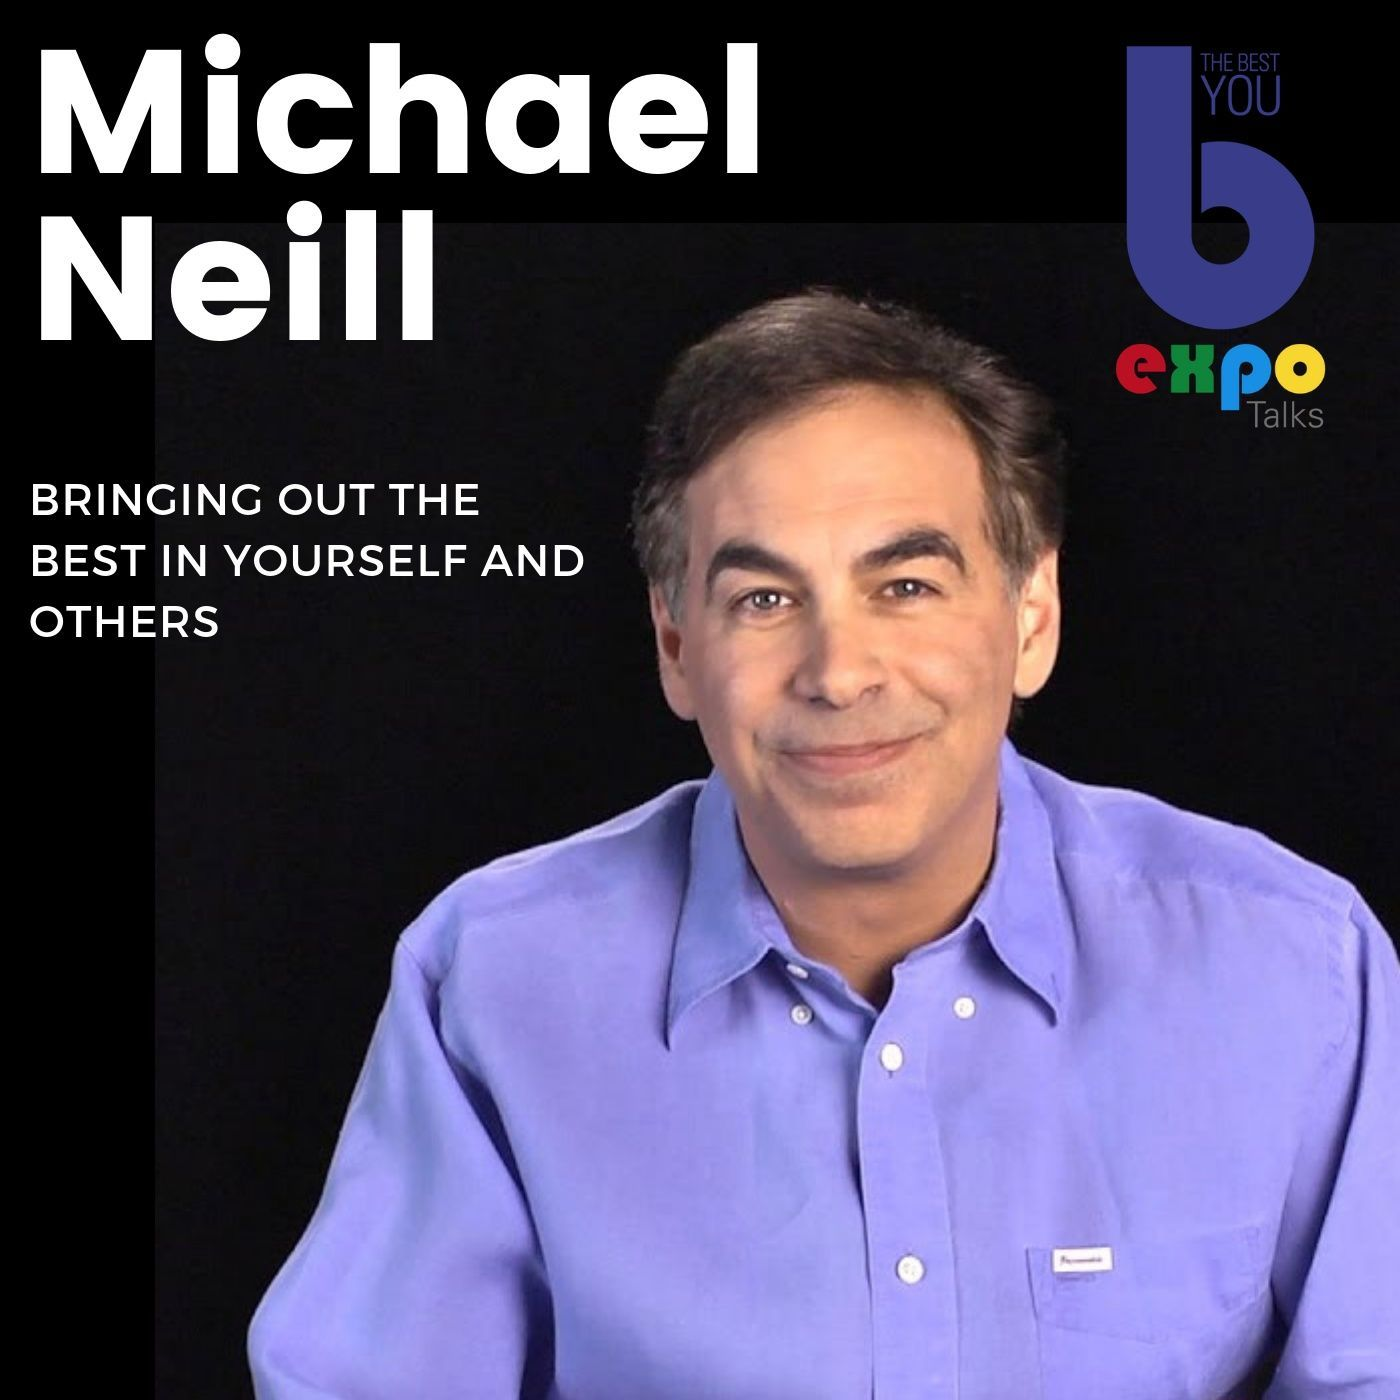 Listen to Michael Neil at The Best You EXPO